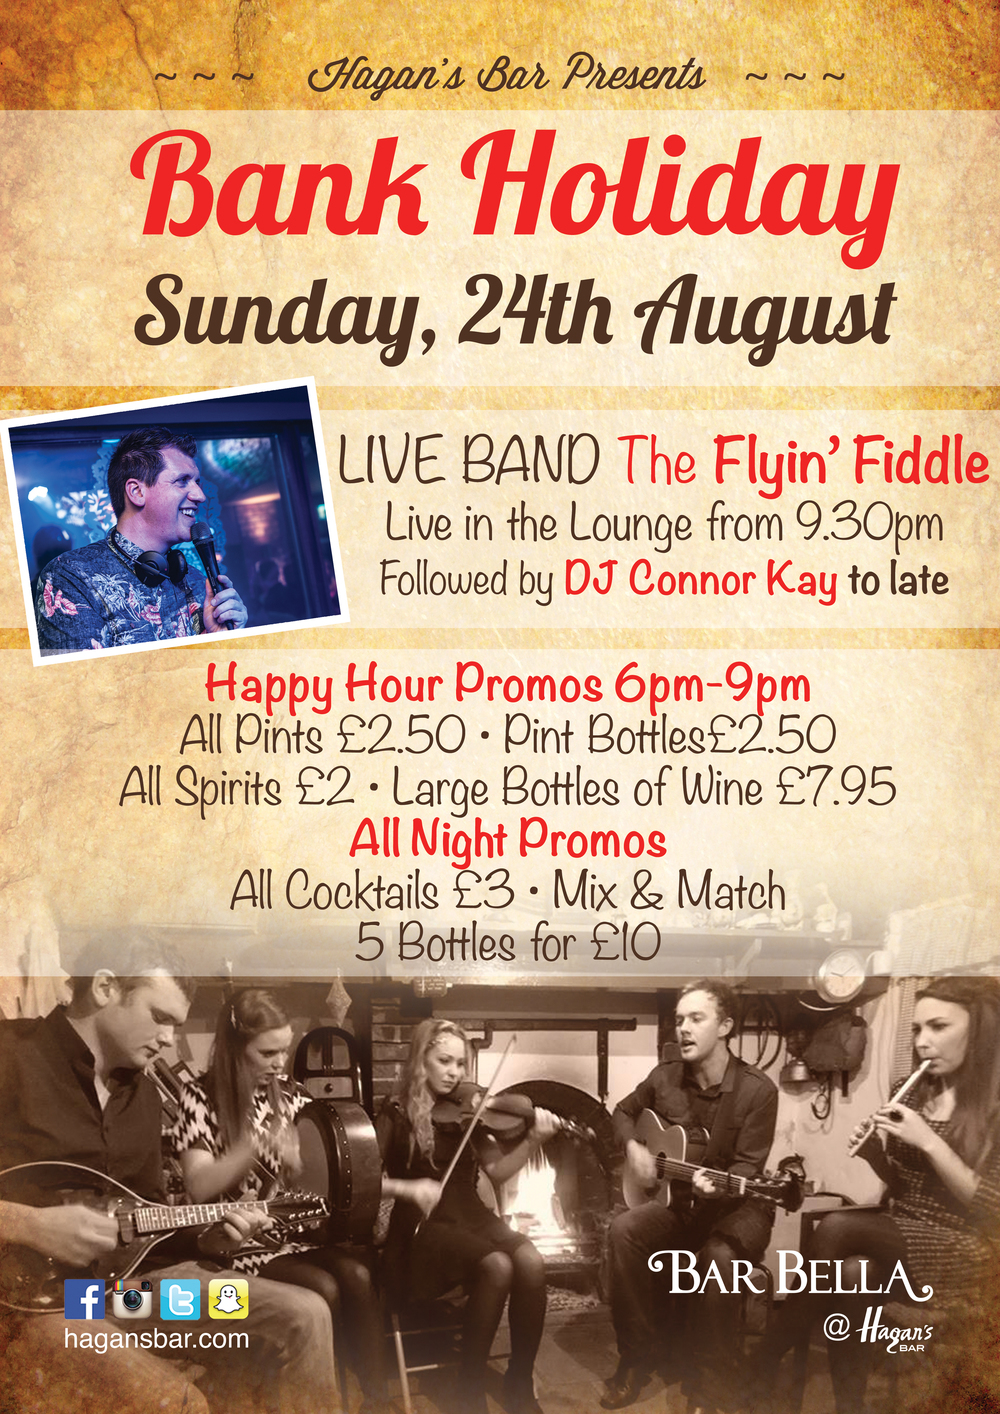 This Bank Holiday Sunday, 24th August, 2014